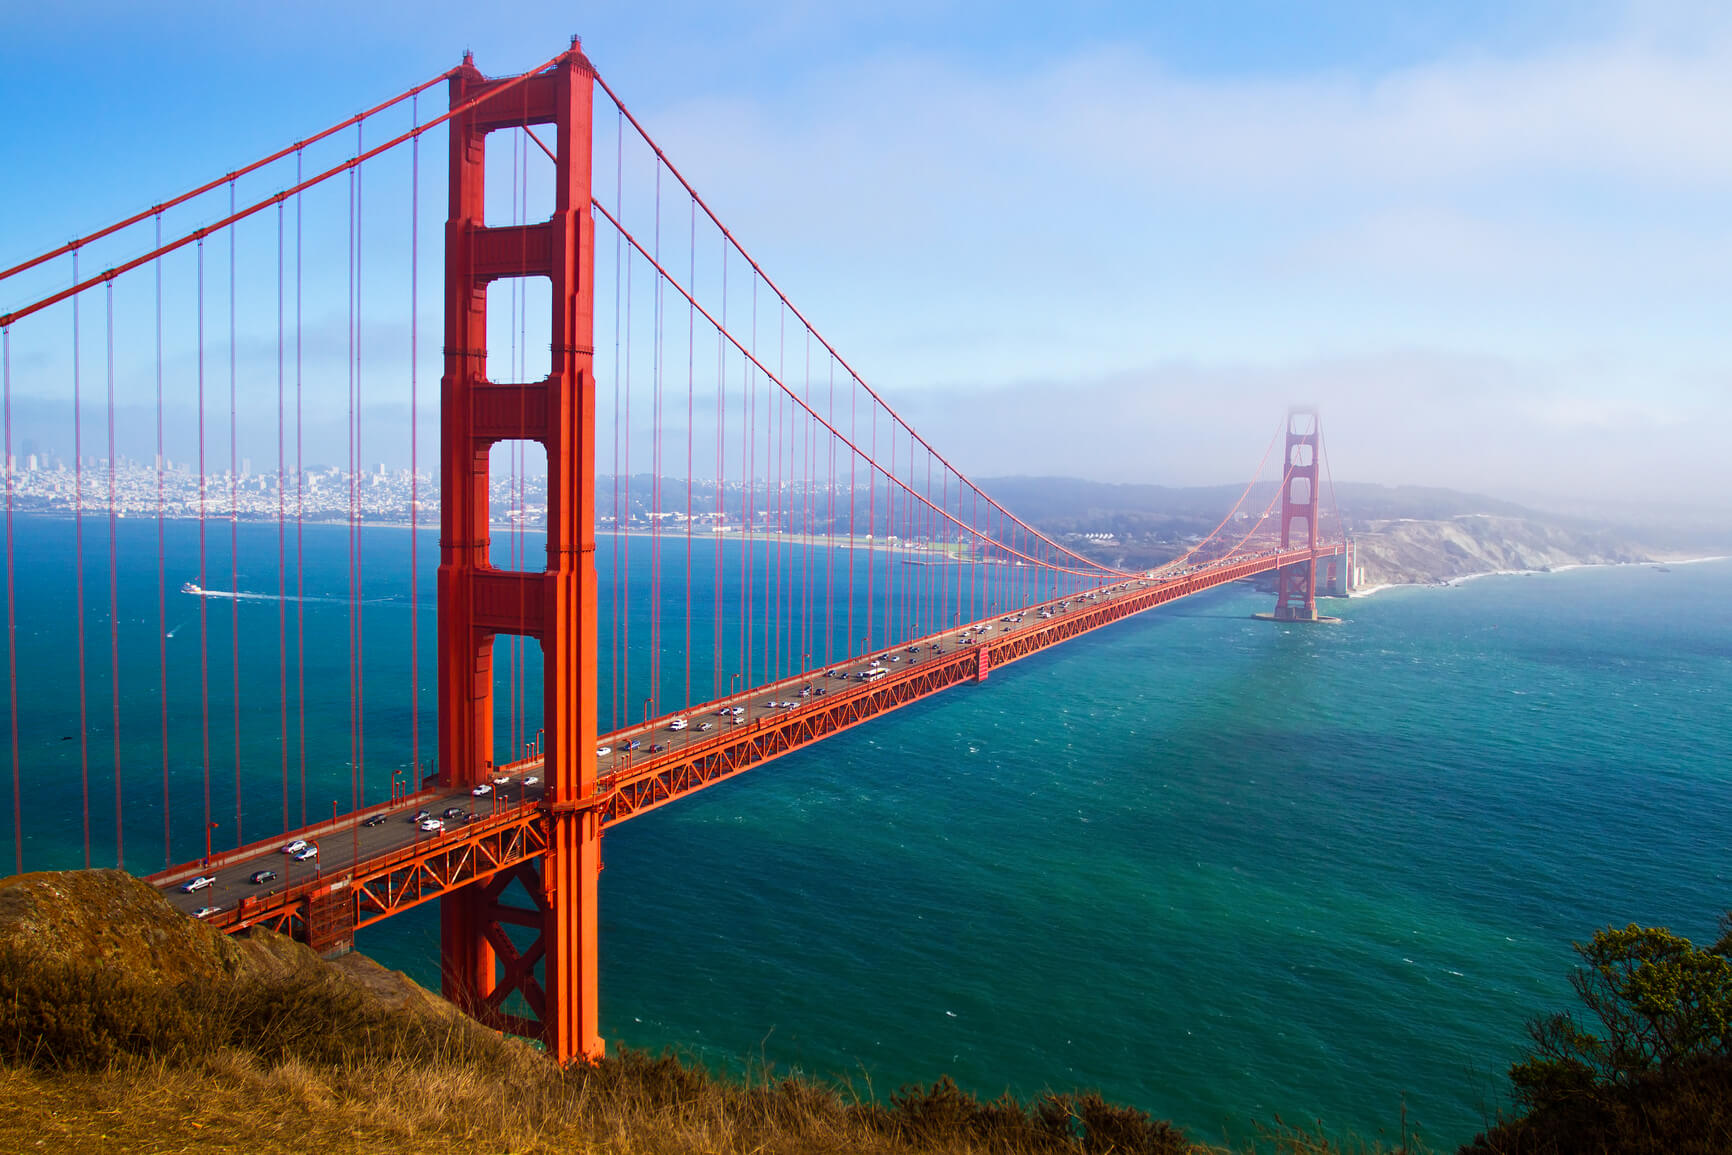 Vienna, Austria to San Francisco, USA for only €314 roundtrip (Oct-Mar dates)